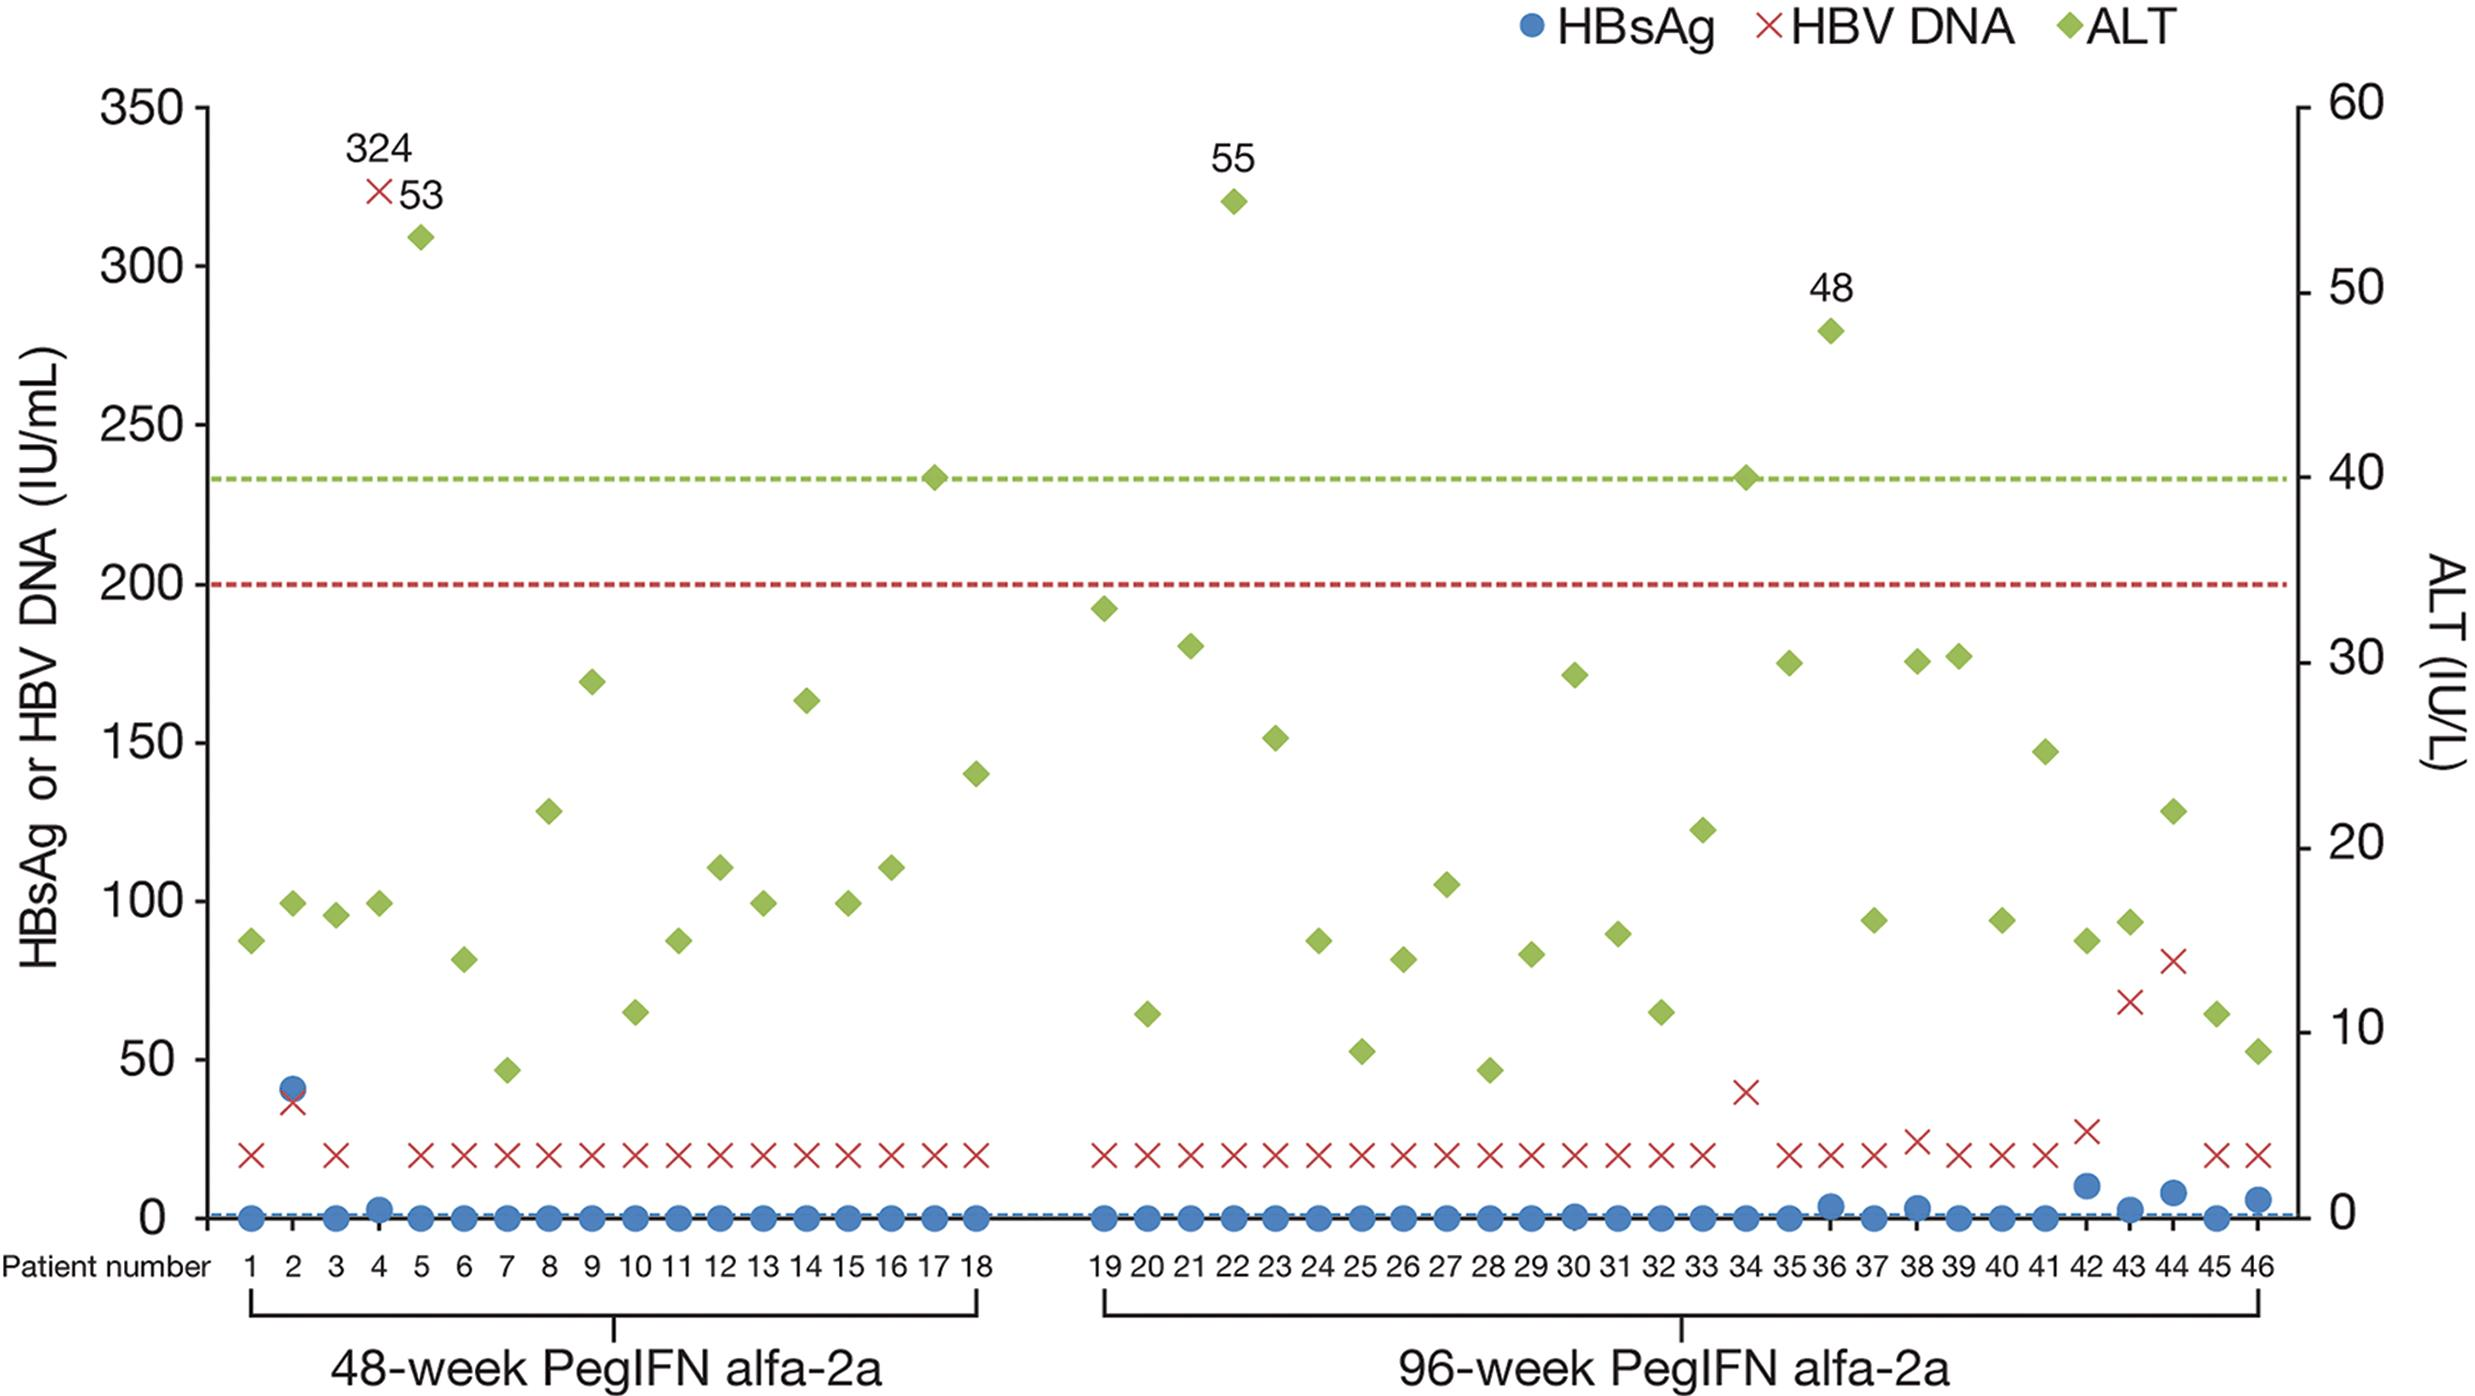 HBsAg, HBV DNA, and ALT levels of responders (HBsAg loss at end of treatment) 48 weeks after treatment discontinuation.